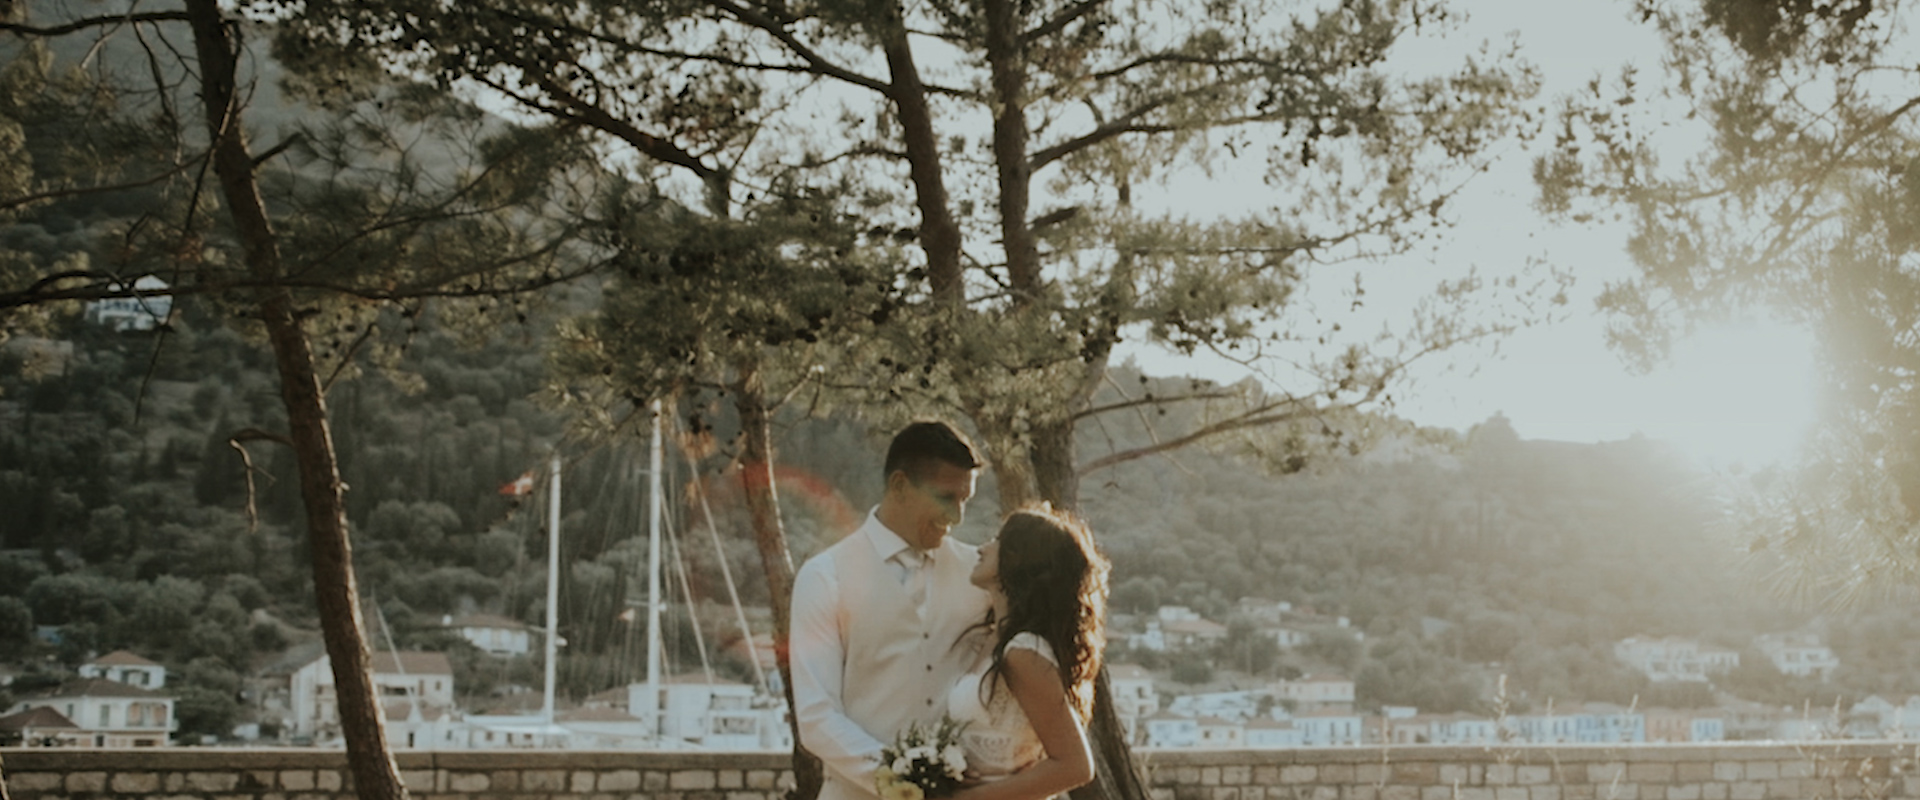 Our summer wedding in Ithaca was magic!We are watching over and over again our video that he made just for us!He captured in a unique way the most important moments of our wedding.The beauty of the island, the good vibes of all our guests, all the emotions, all the happiness…There is not even one of our guests that didn't get emotional while watching our wedding video and this is the greatest sign of how amazing his work is! - christie & DAVID